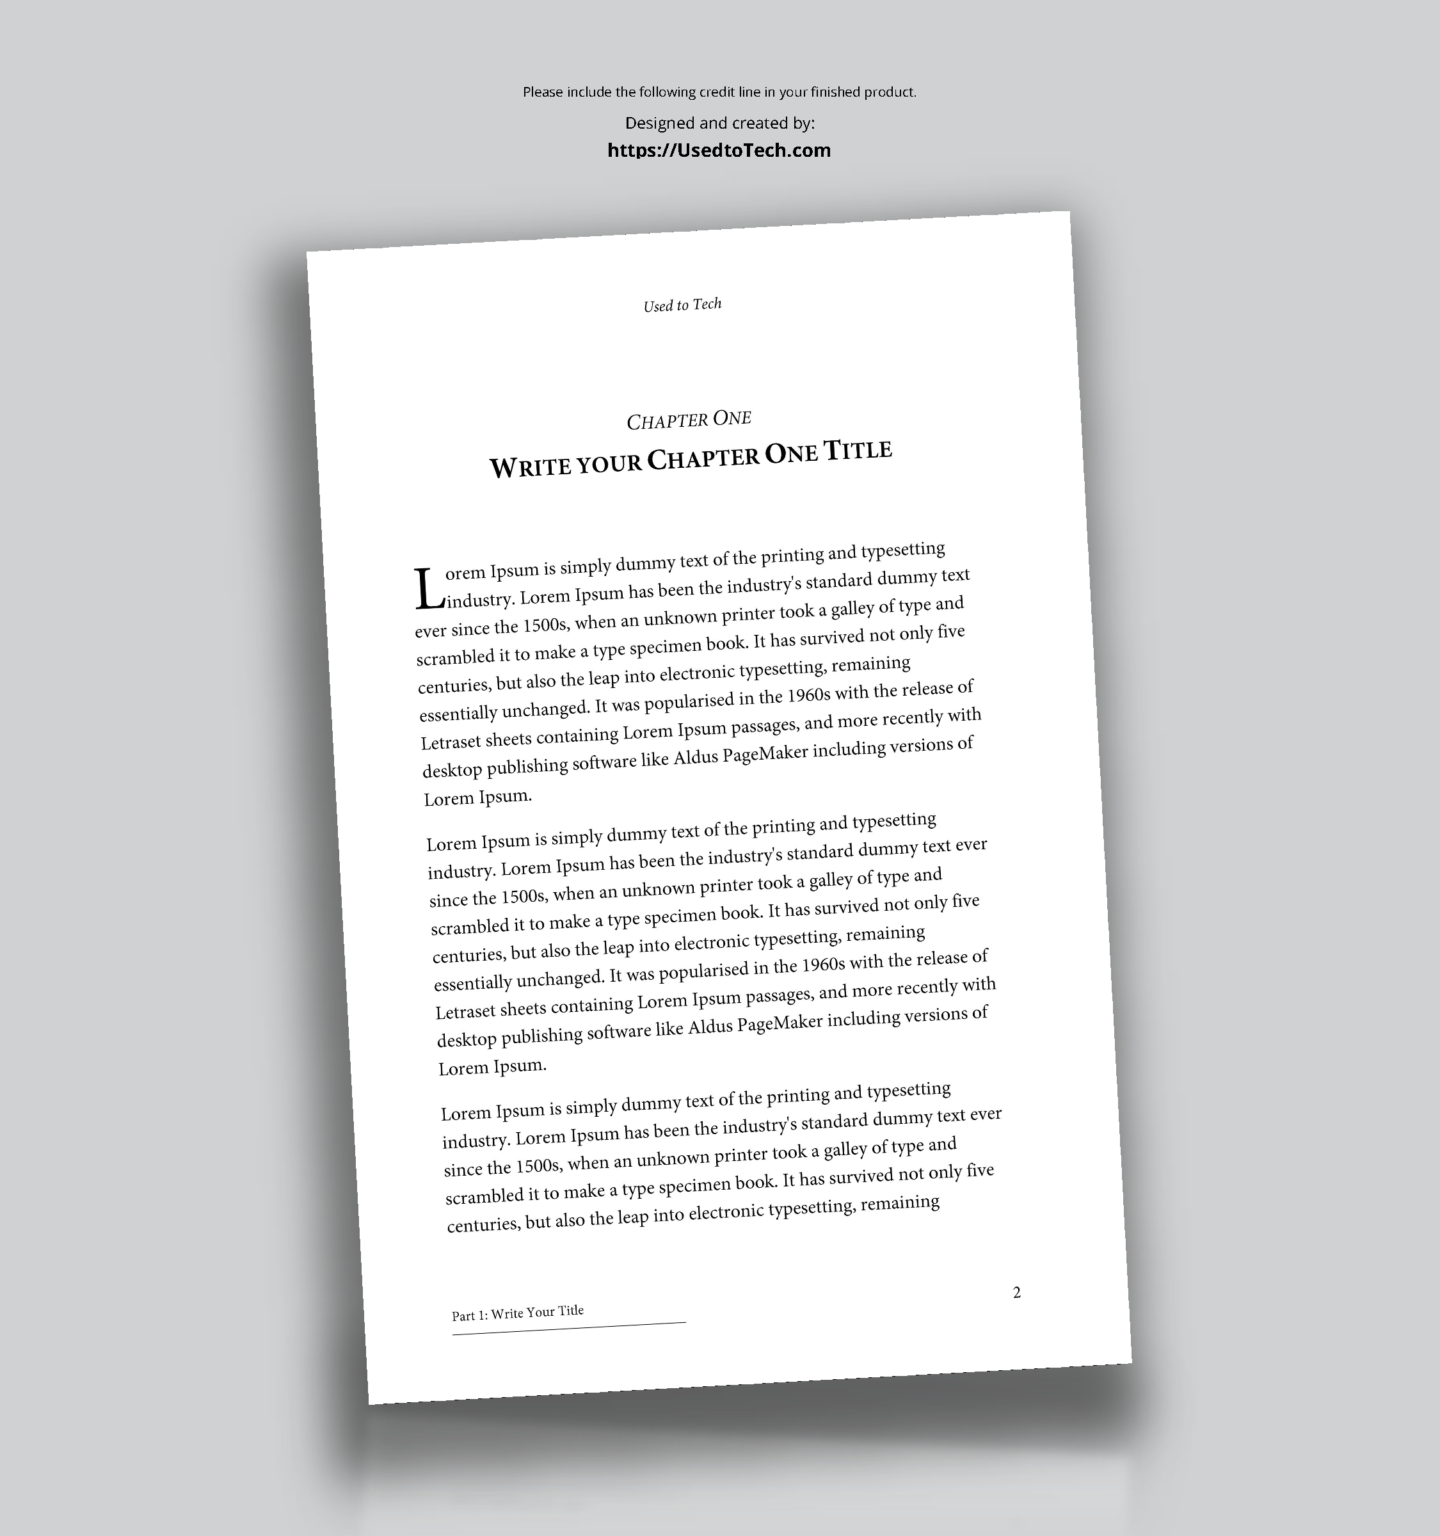 Professional Looking Book Template For Word Free Used To Tech With 6x9 Book Template For Word Booklet Template Book Template Word Template